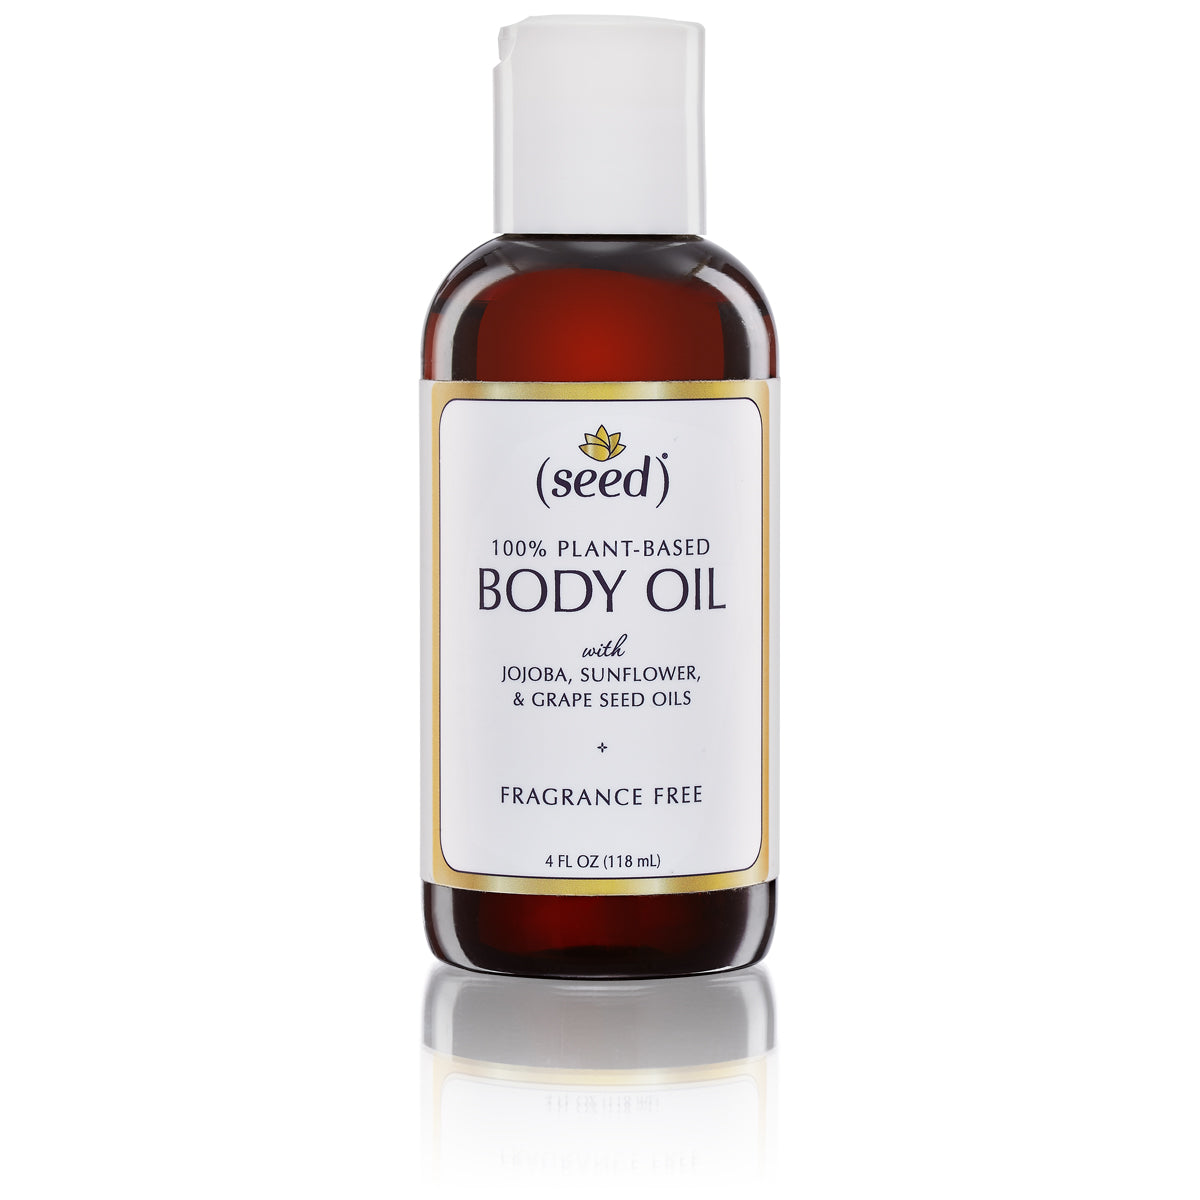 Seed Body Oil available in a dispensing disc cap or spray mist